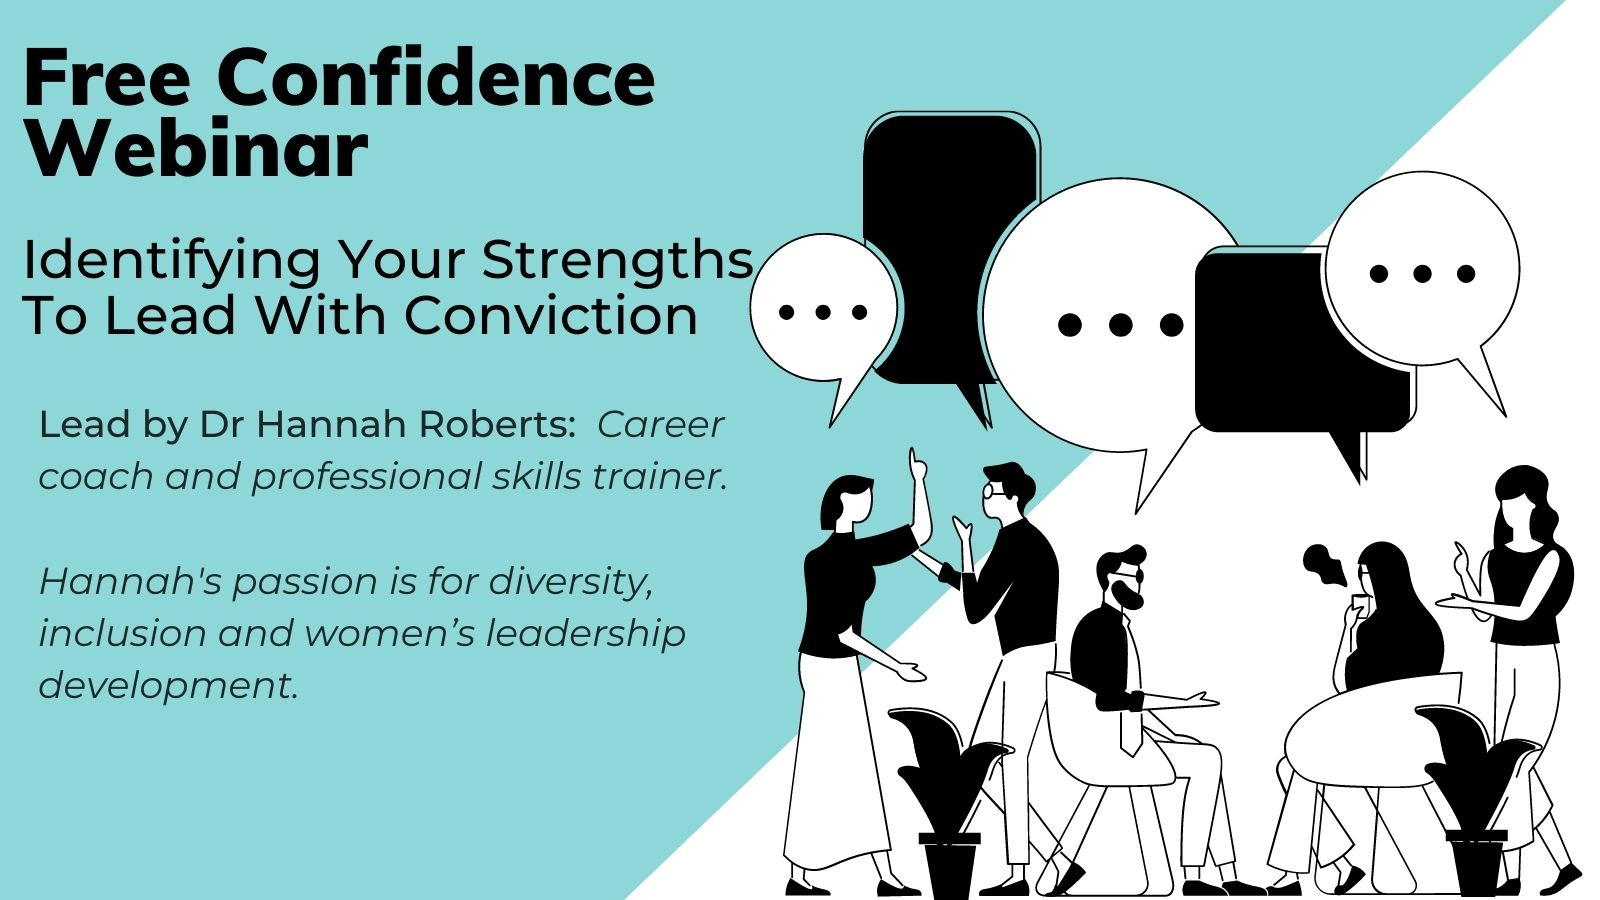 Confidence: Identifying Your Strengths To Lead With Conviction